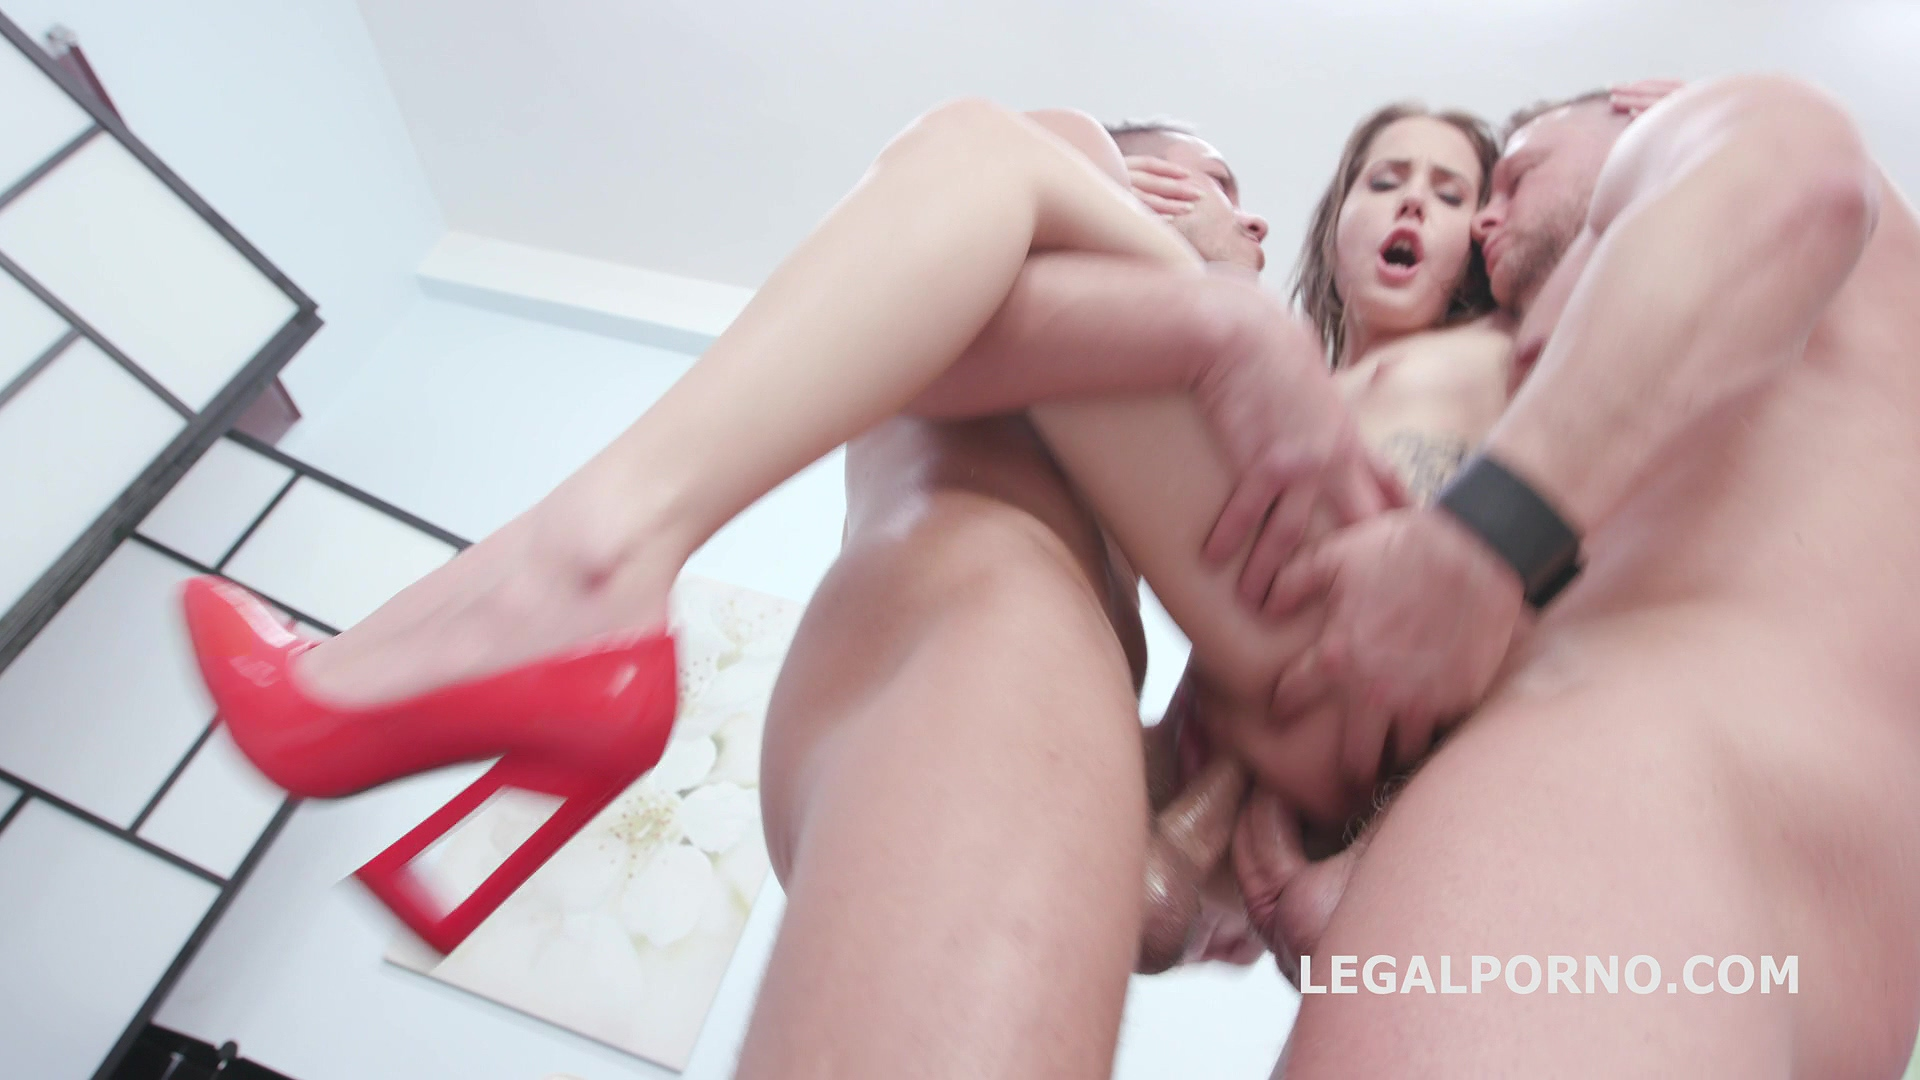 dap_destination_stasia_si_first_time_dap_with_balls_deep_anal_gapes_and_creampie_swallow_gio1393_fhd_mp4_20200317_121540_993.jpg